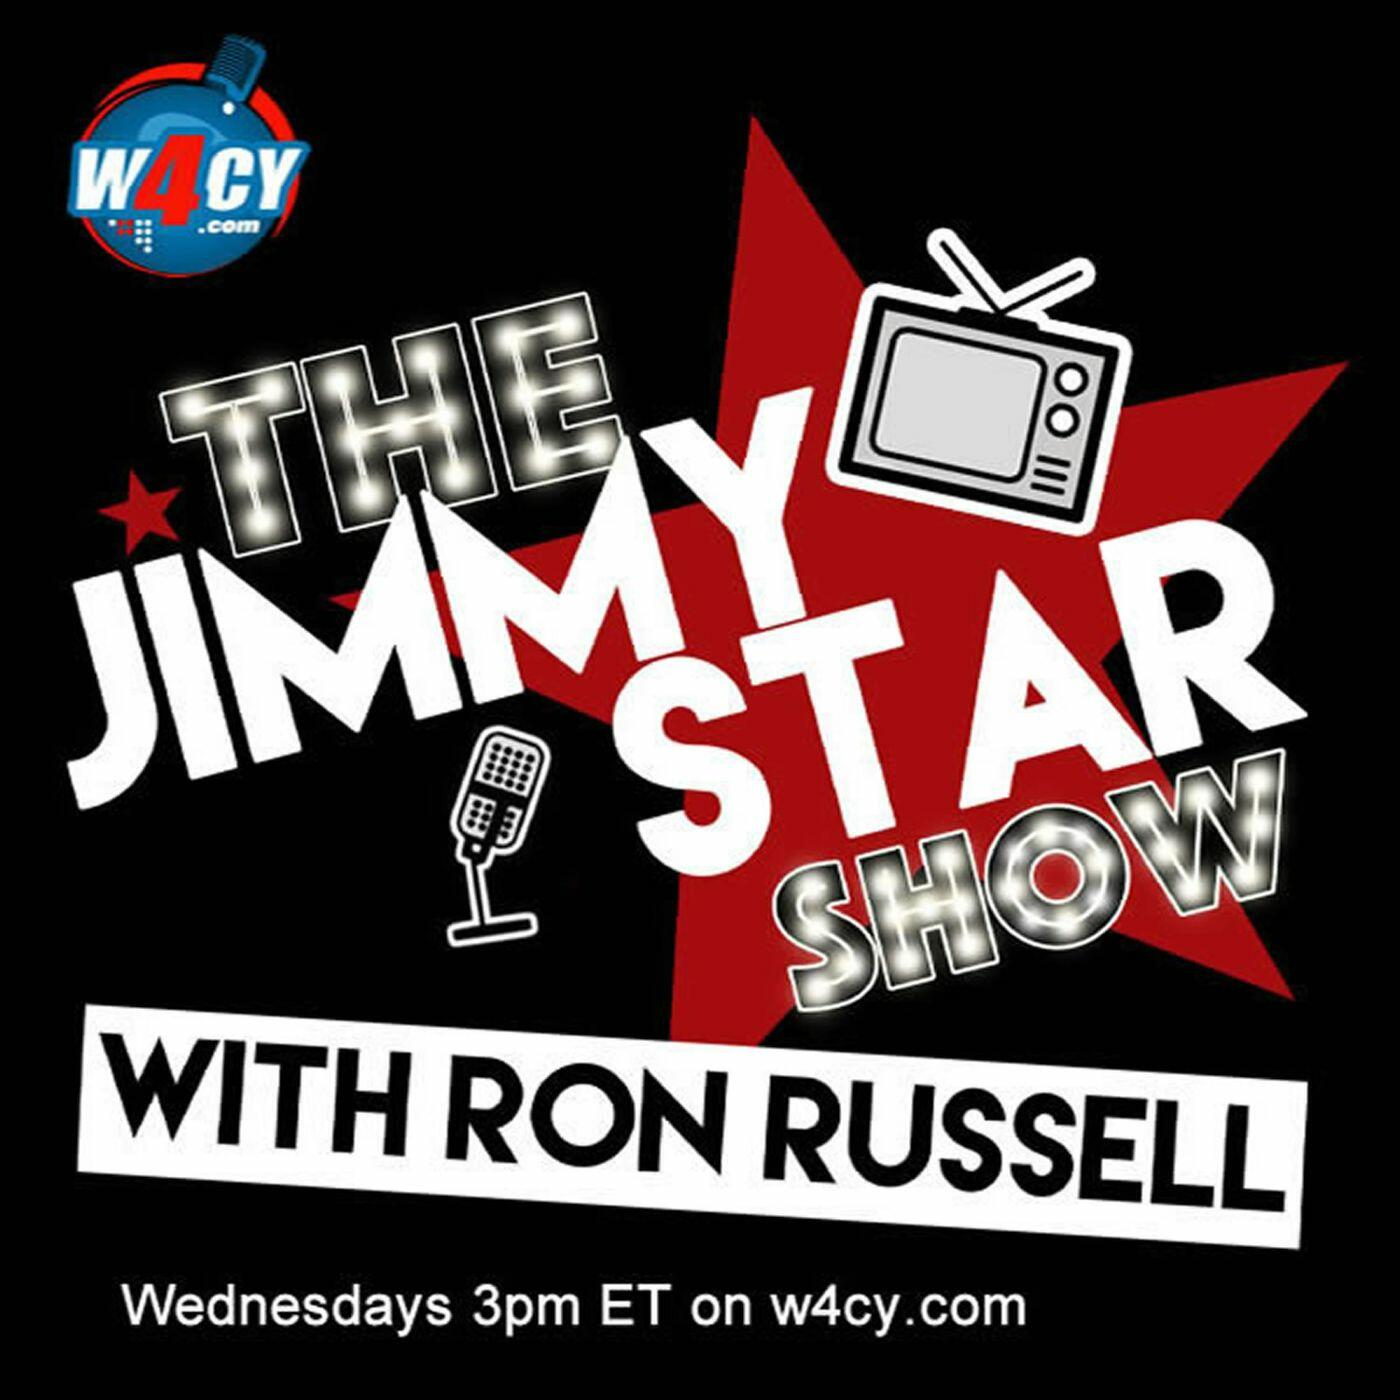 The Jimmy Star Show w/Ron Russell